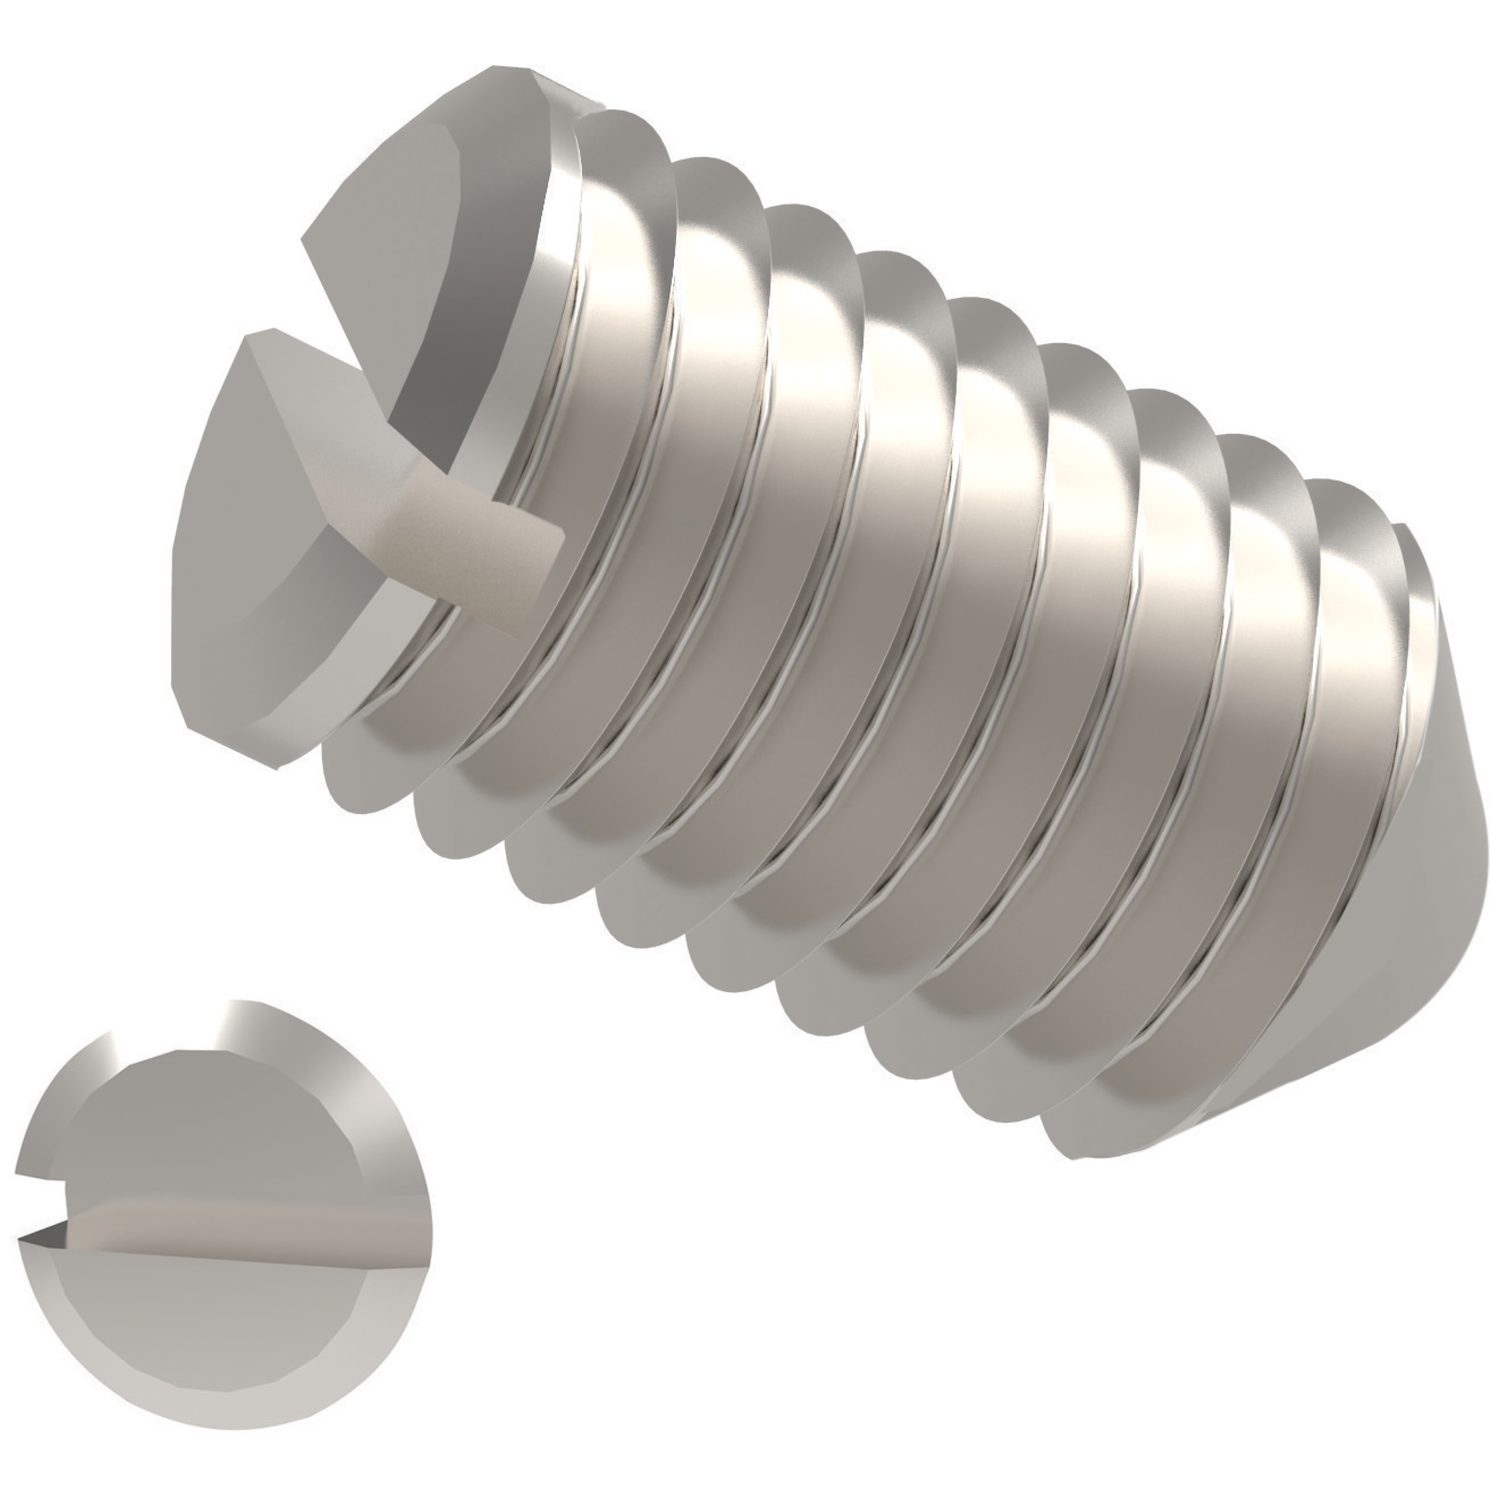 Slotted Set Screws Cone Point Stainless Steel A2. To DIN 553, cone point.